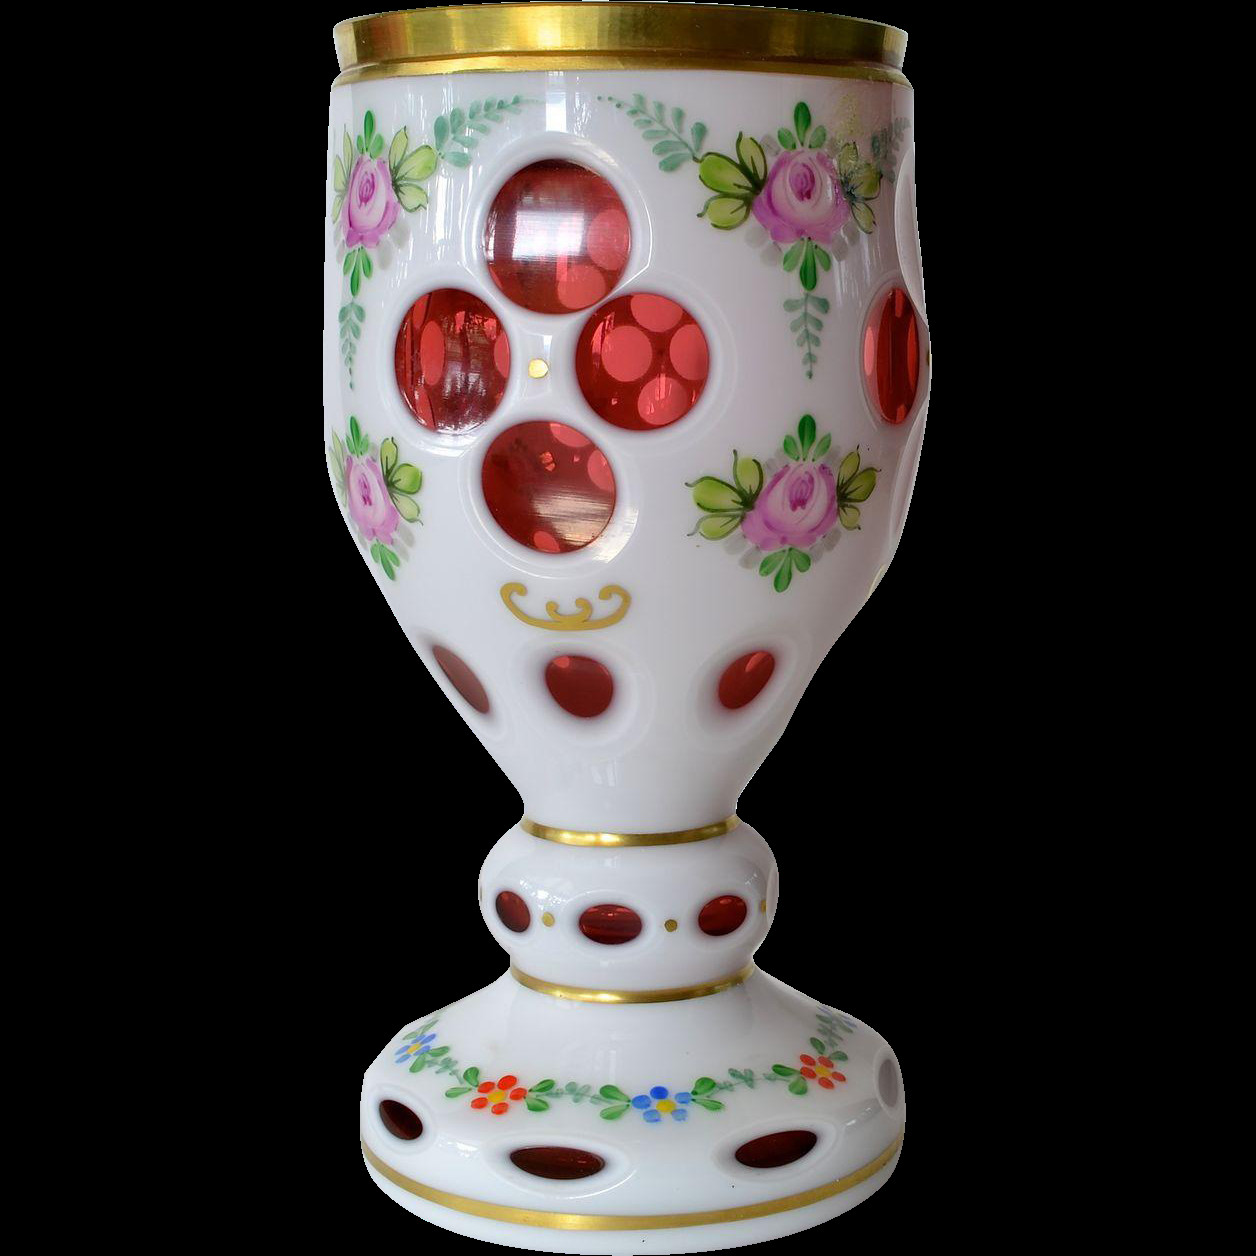 Bohemian Glass Vase Of A Bohemian Cranberry White Overlay Vintage Goblet 1930c Czech Throughout A Bohemian Cranberry White Overlay Vintage Goblet 1930c